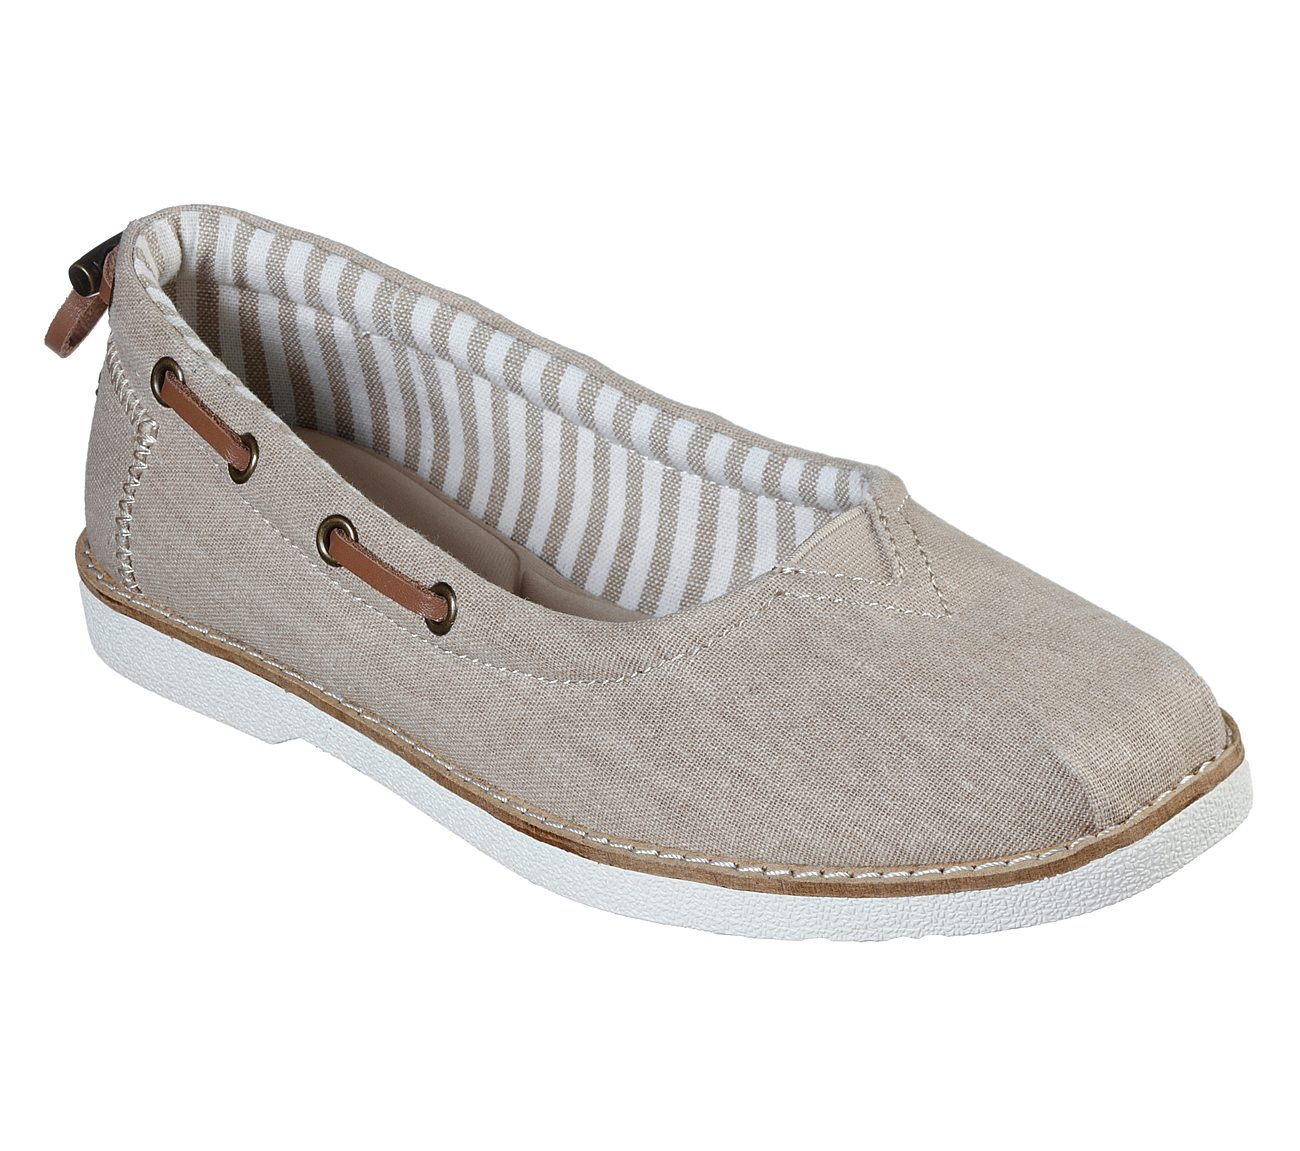 1f978007a907 Buy SKECHERS BOBS Chill Luxe - Saturdays Boat Shoes Shoes only  47.00